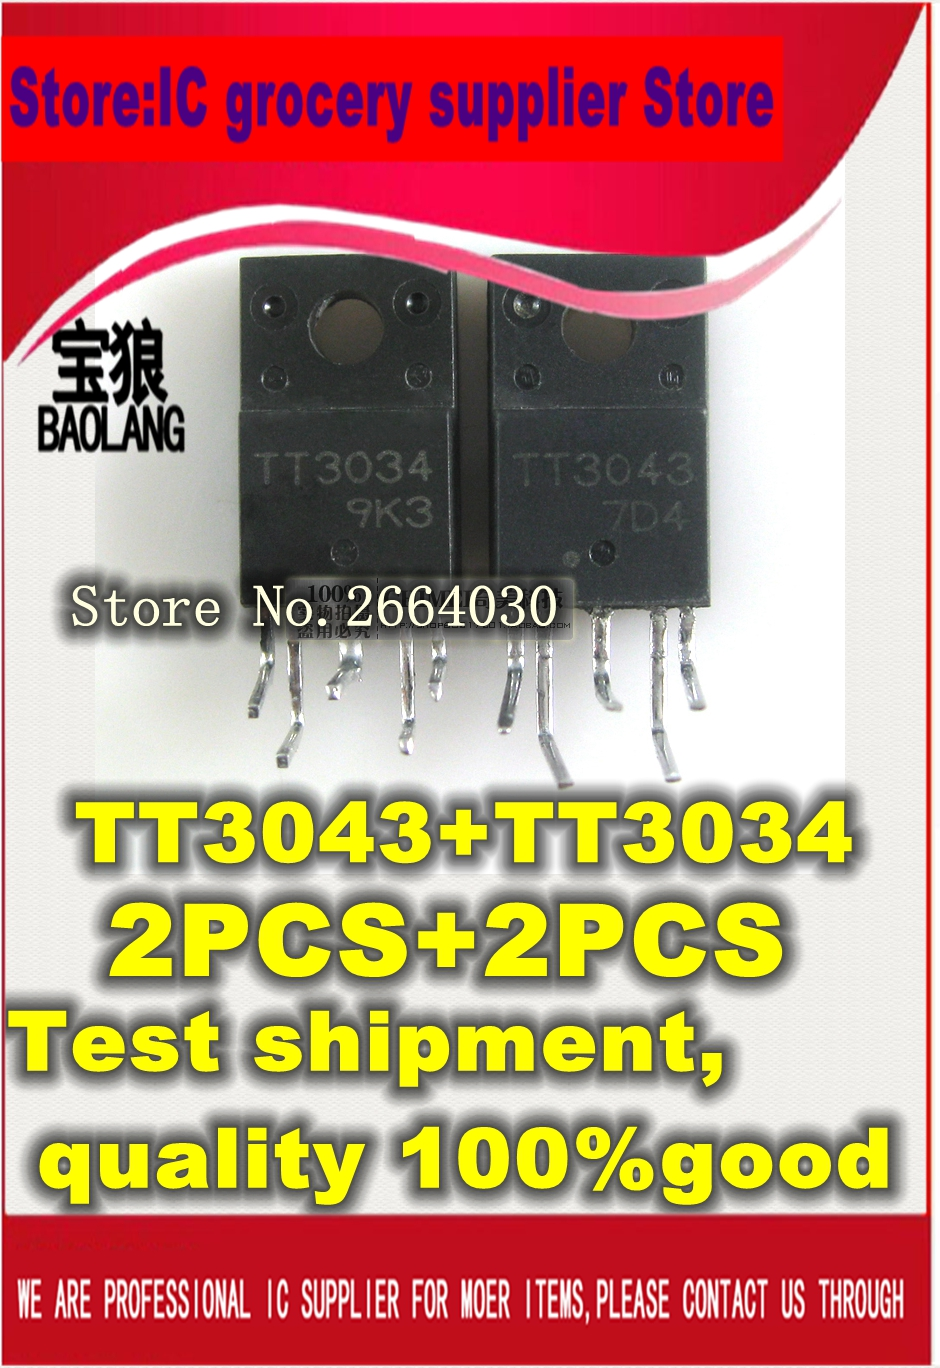 Free freight TT3034 2PCS+ TT3043 2PCS Test shipment, quality 100%good 2pcs 100